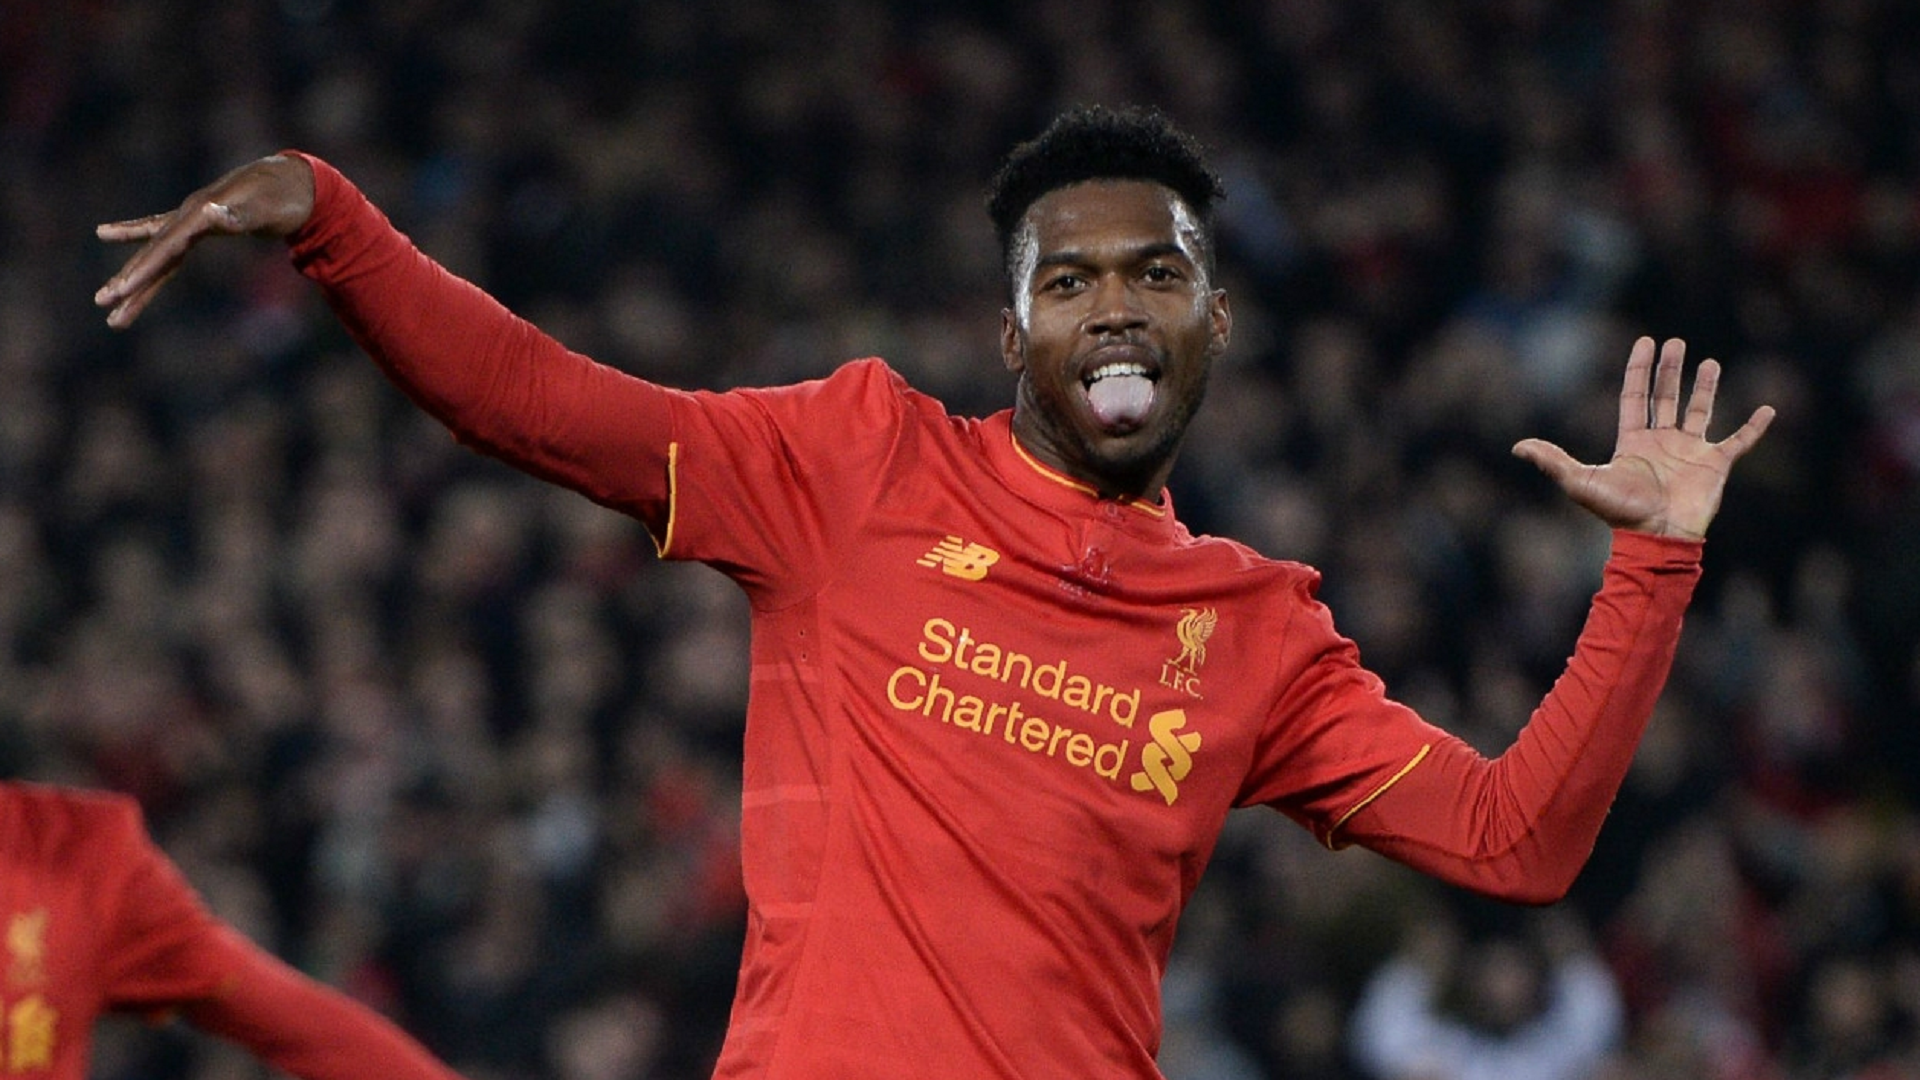 Sturridge signs with Perth Glory as winding career path takes striker to Australia